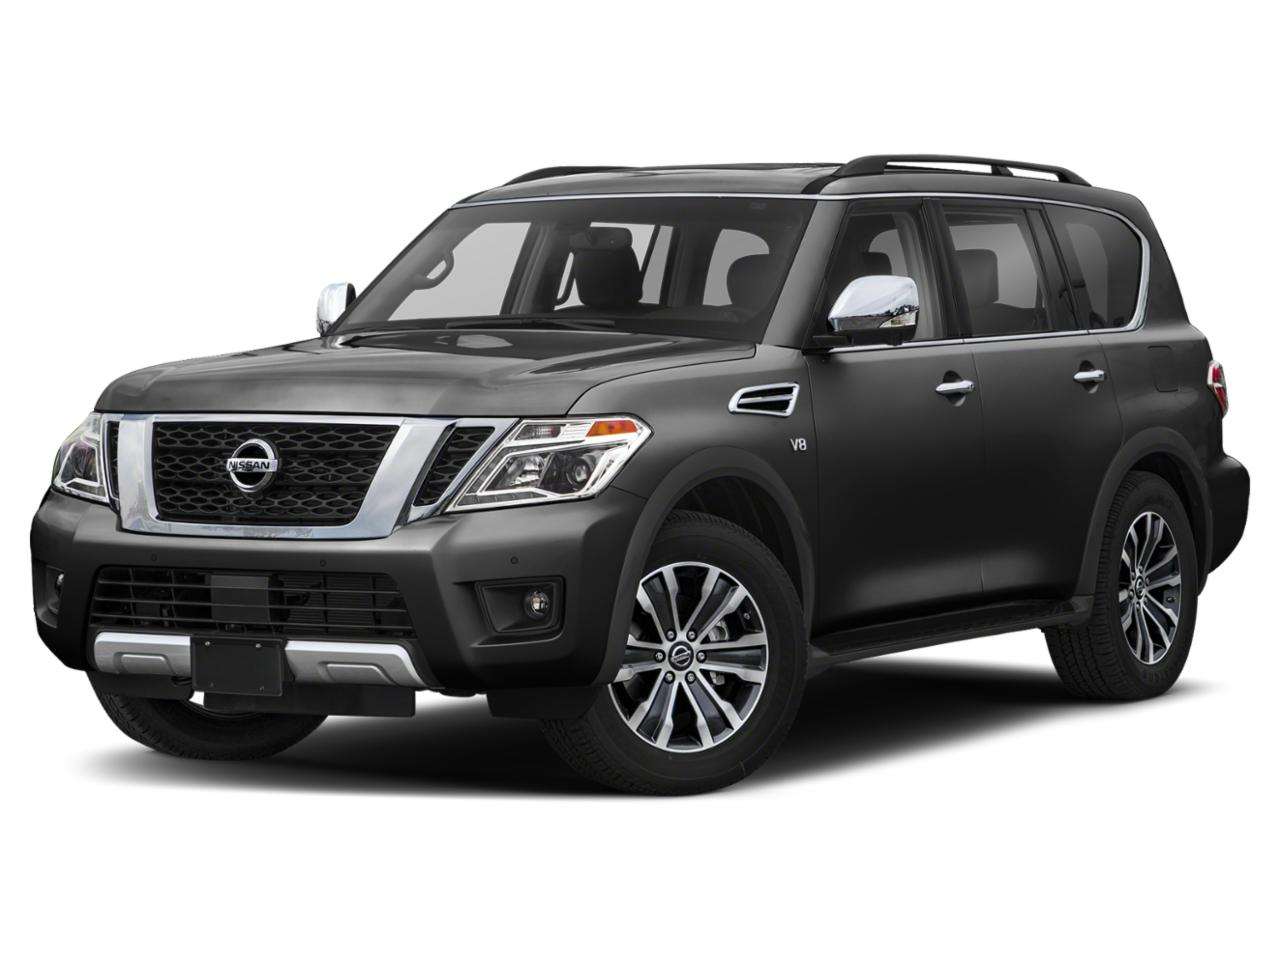 2019 Nissan Armada Vehicle Photo in Quakertown, PA 18951